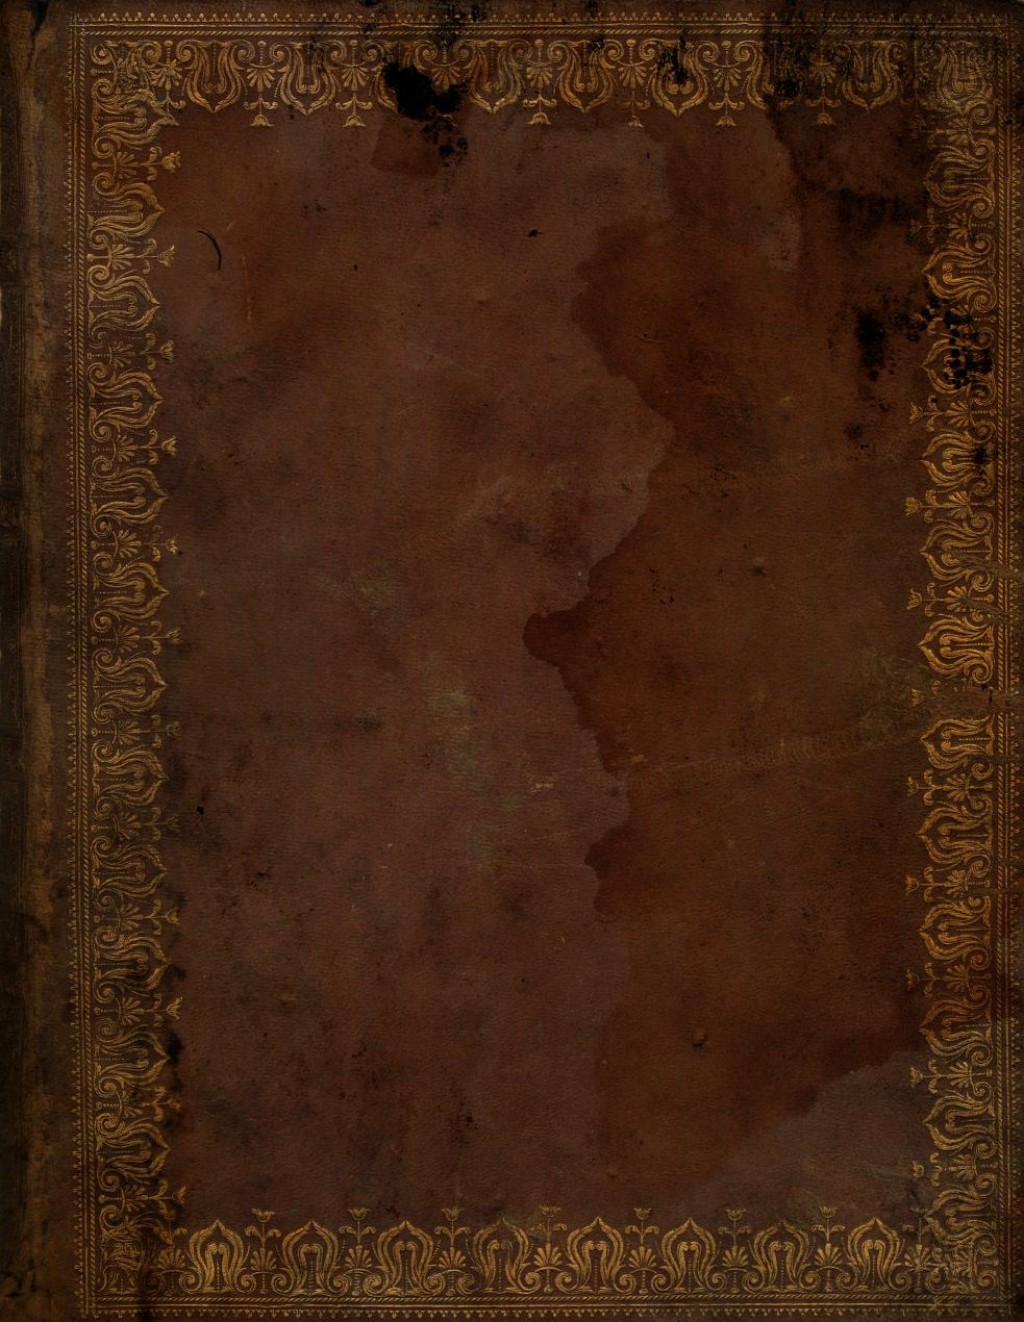 008 Frightening Old Book Cover Template Idea  Fashioned WordLarge